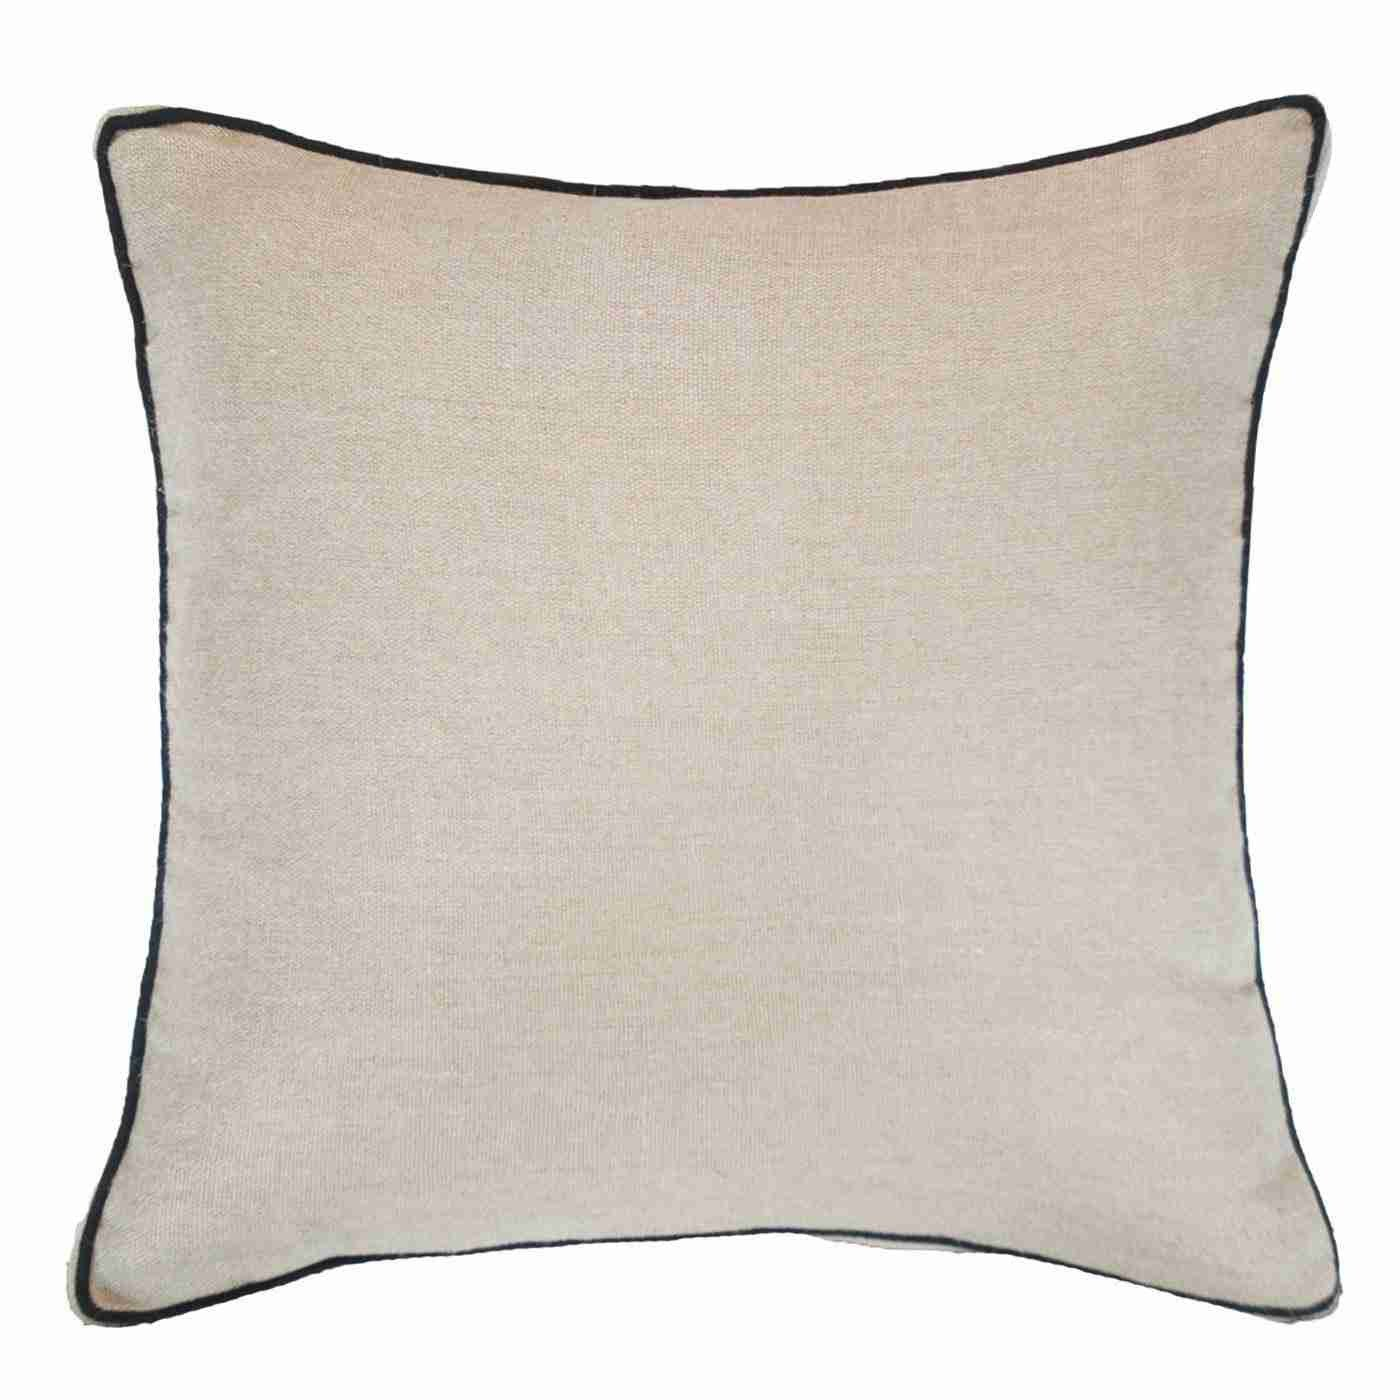 Bandhini Homewear Design Lounge Cushion Linen / 22 x 22 Piped Linen Natural Lounge Cushion 55 x 55 cm